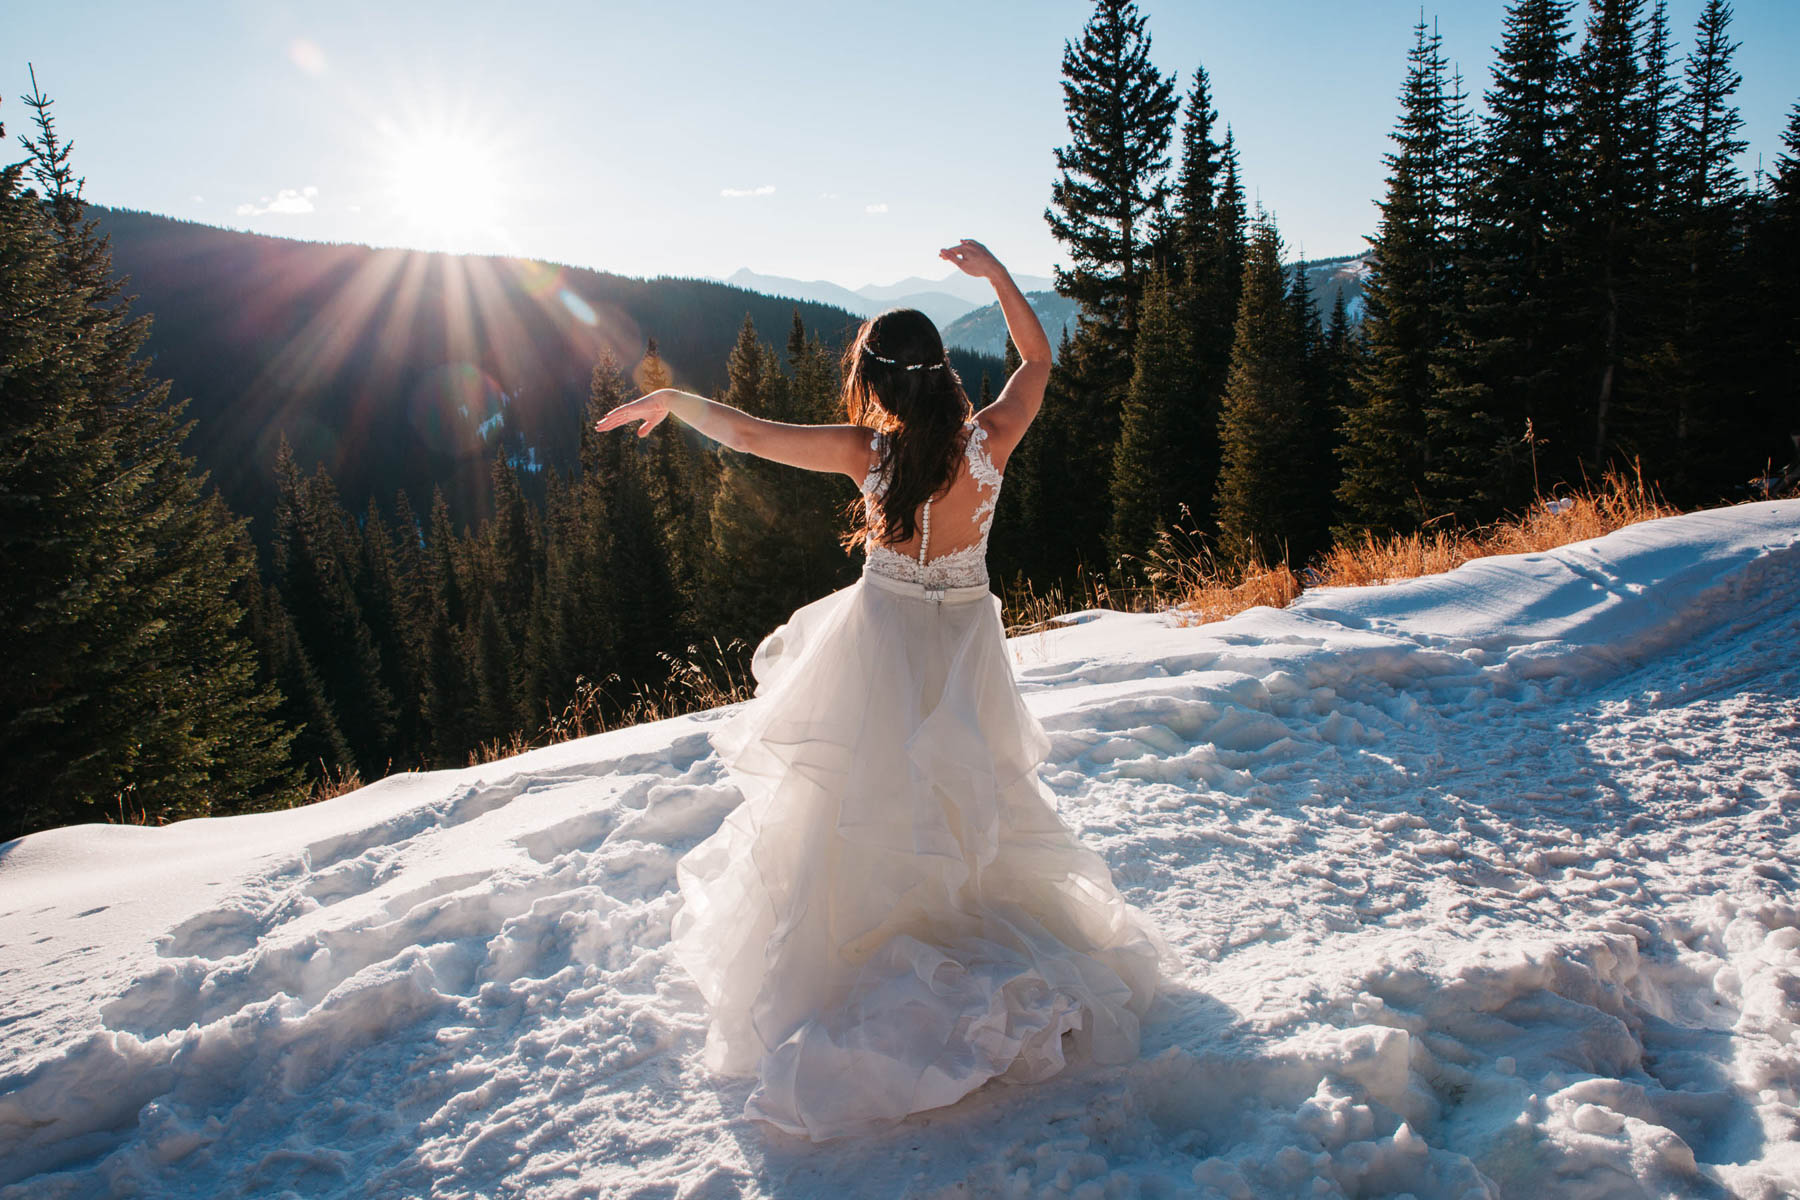 112colorado-mountain-wedding-photographer-denver-colorado-mountain-weddings-intimate-weddings-destination-colorado-rocky-mountain-wedding-photographer_snowmobile-elopement-adventure-elopement-colorado-elopement-photographer-stylzed-shoot-dec2017-799.jpg